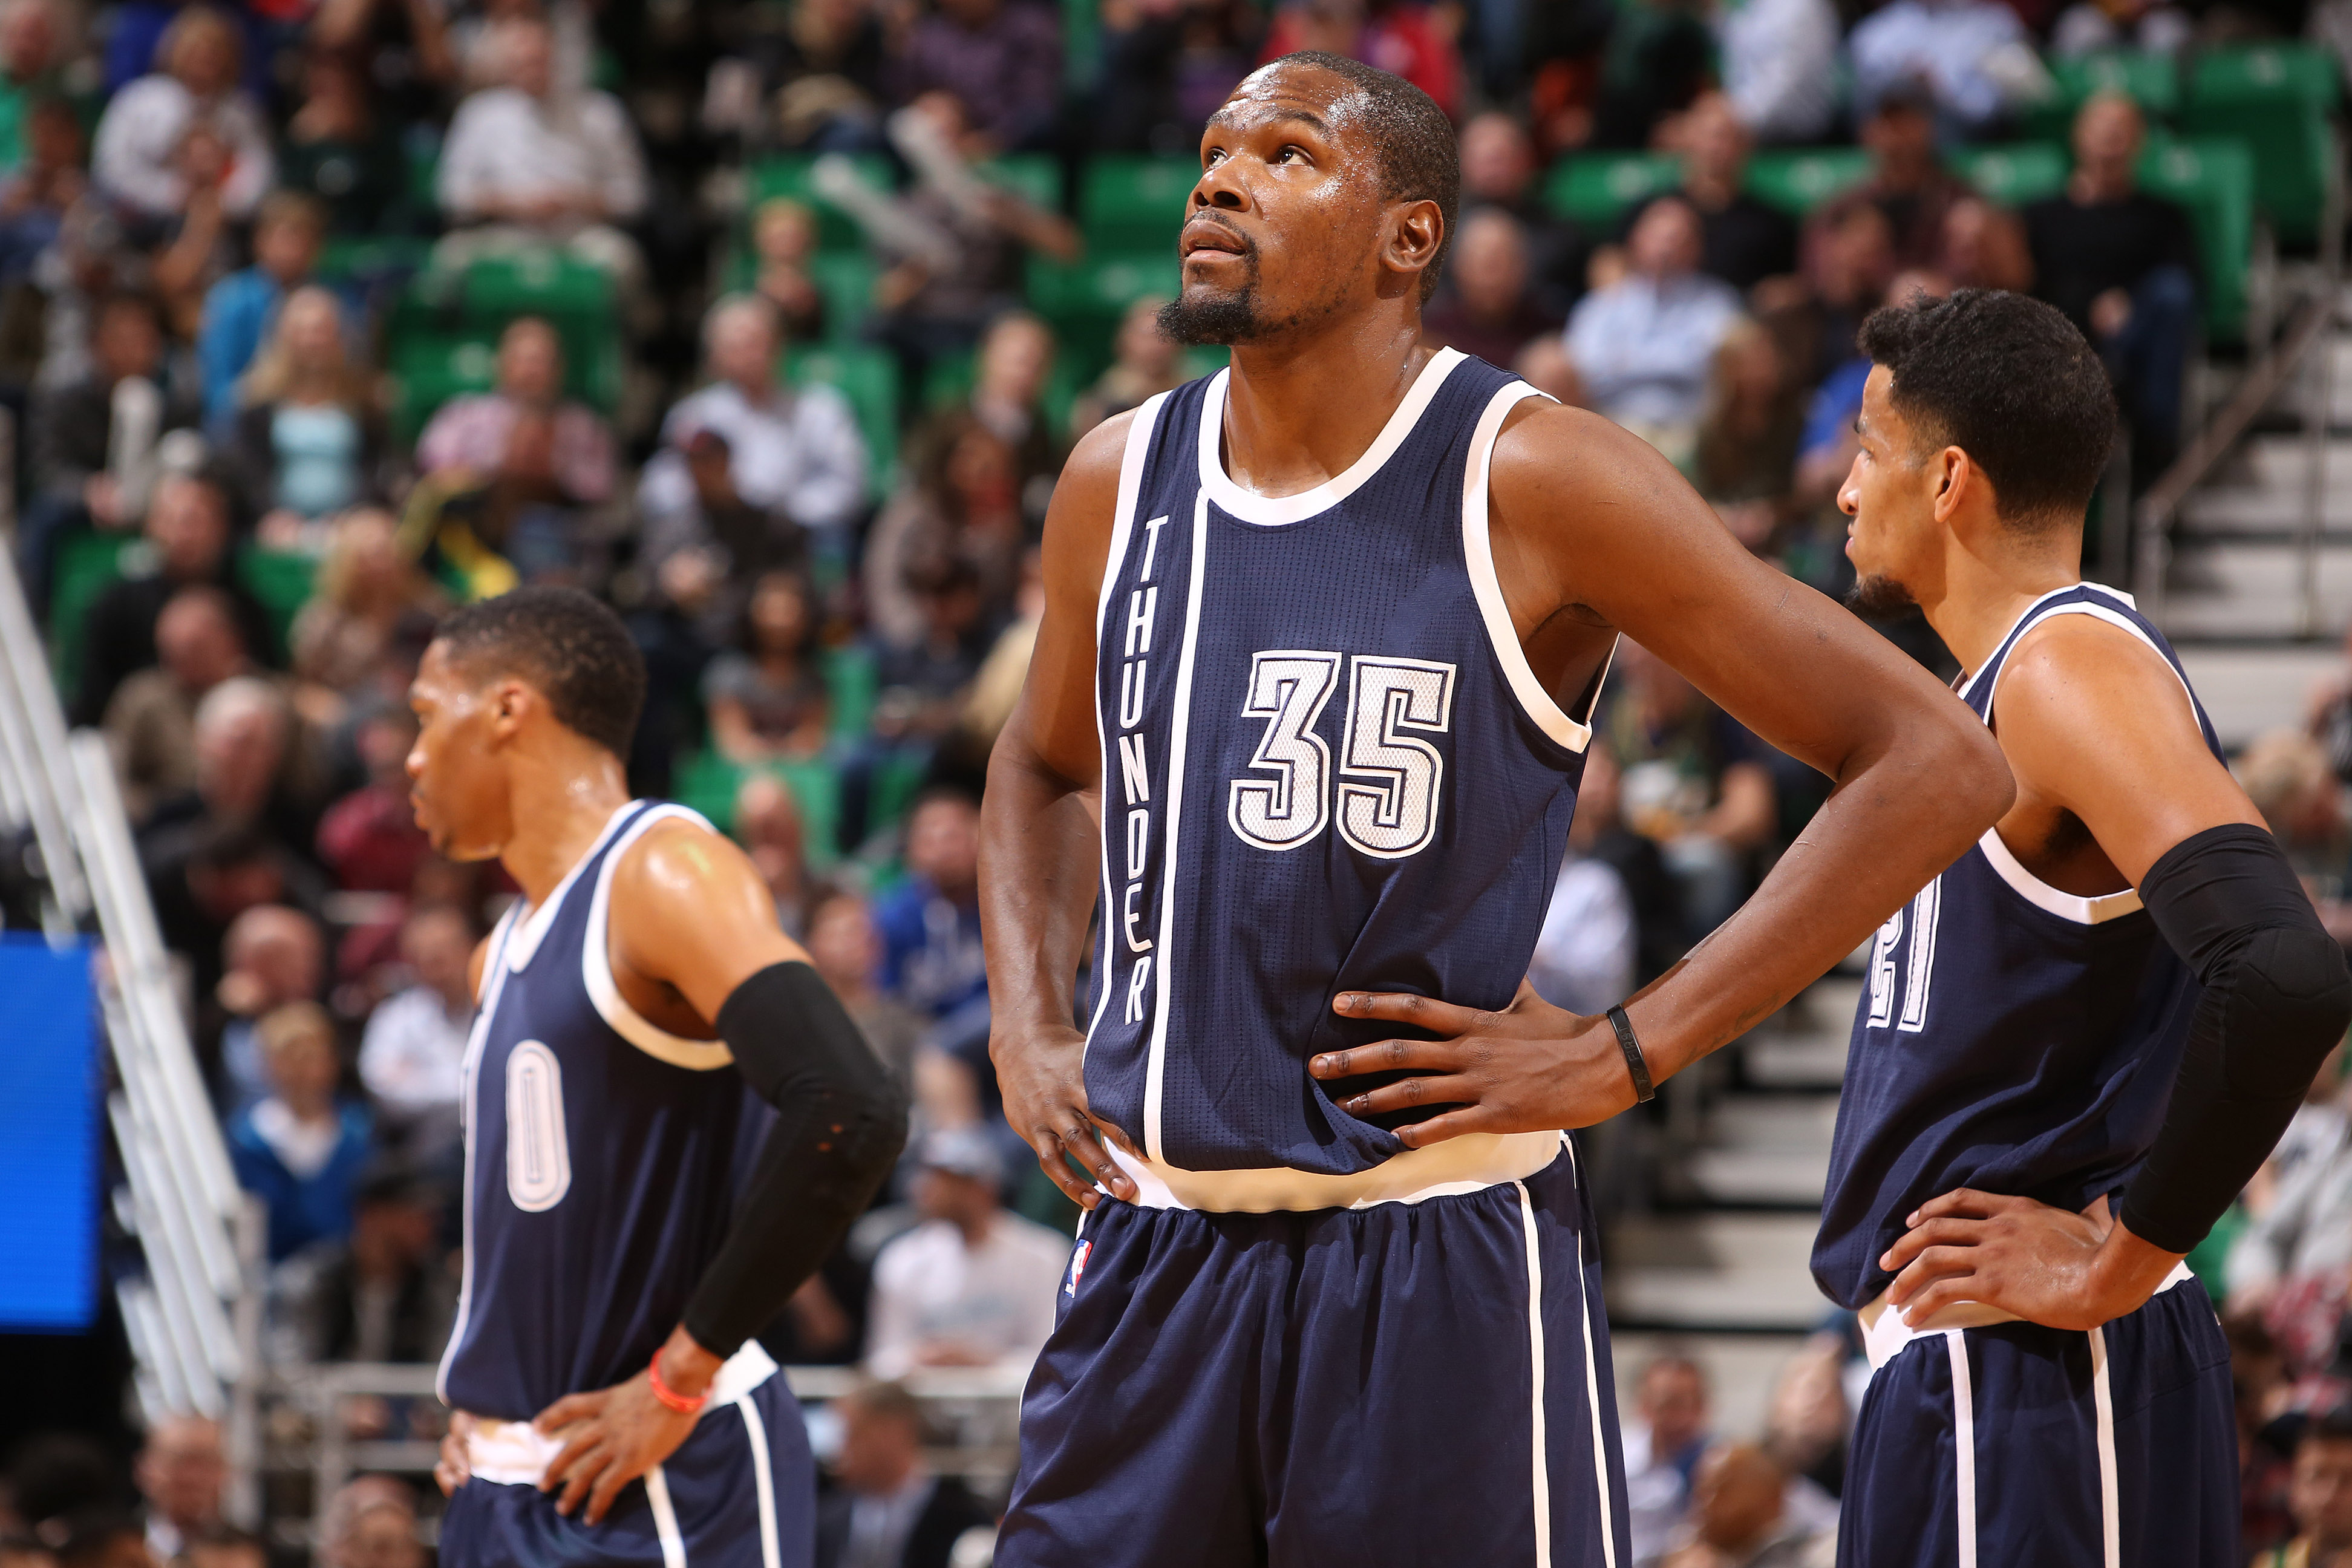 SALT LAKE CITY, UT - NOVEMBER 23:  Kevin Durant #35 of the Oklahoma City Thunder looks on during the game against the Utah Jazz on November 23, 2015 at Vivint Smart Home Arena in Salt Lake City, Utah. (Photo by Melissa Majchrzak/NBAE via Getty Images)